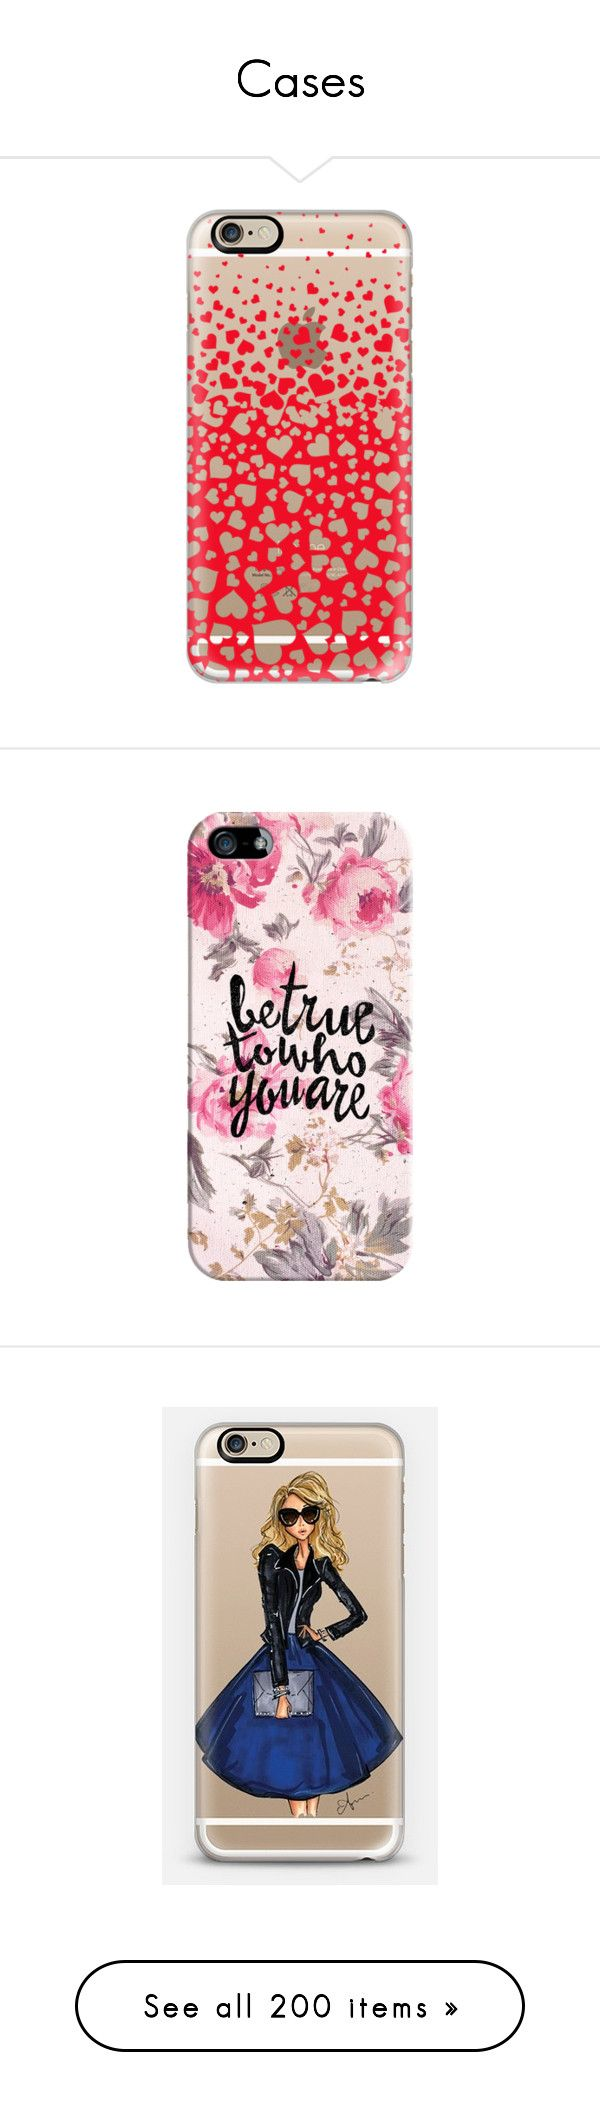 """Cases"" by gisella-jb-pintos ❤ liked on Polyvore featuring accessories, tech accessories, phone, phone cases, capas de iphone, case, iphone case, apple iphone cases, red iphone case and iphone cases"